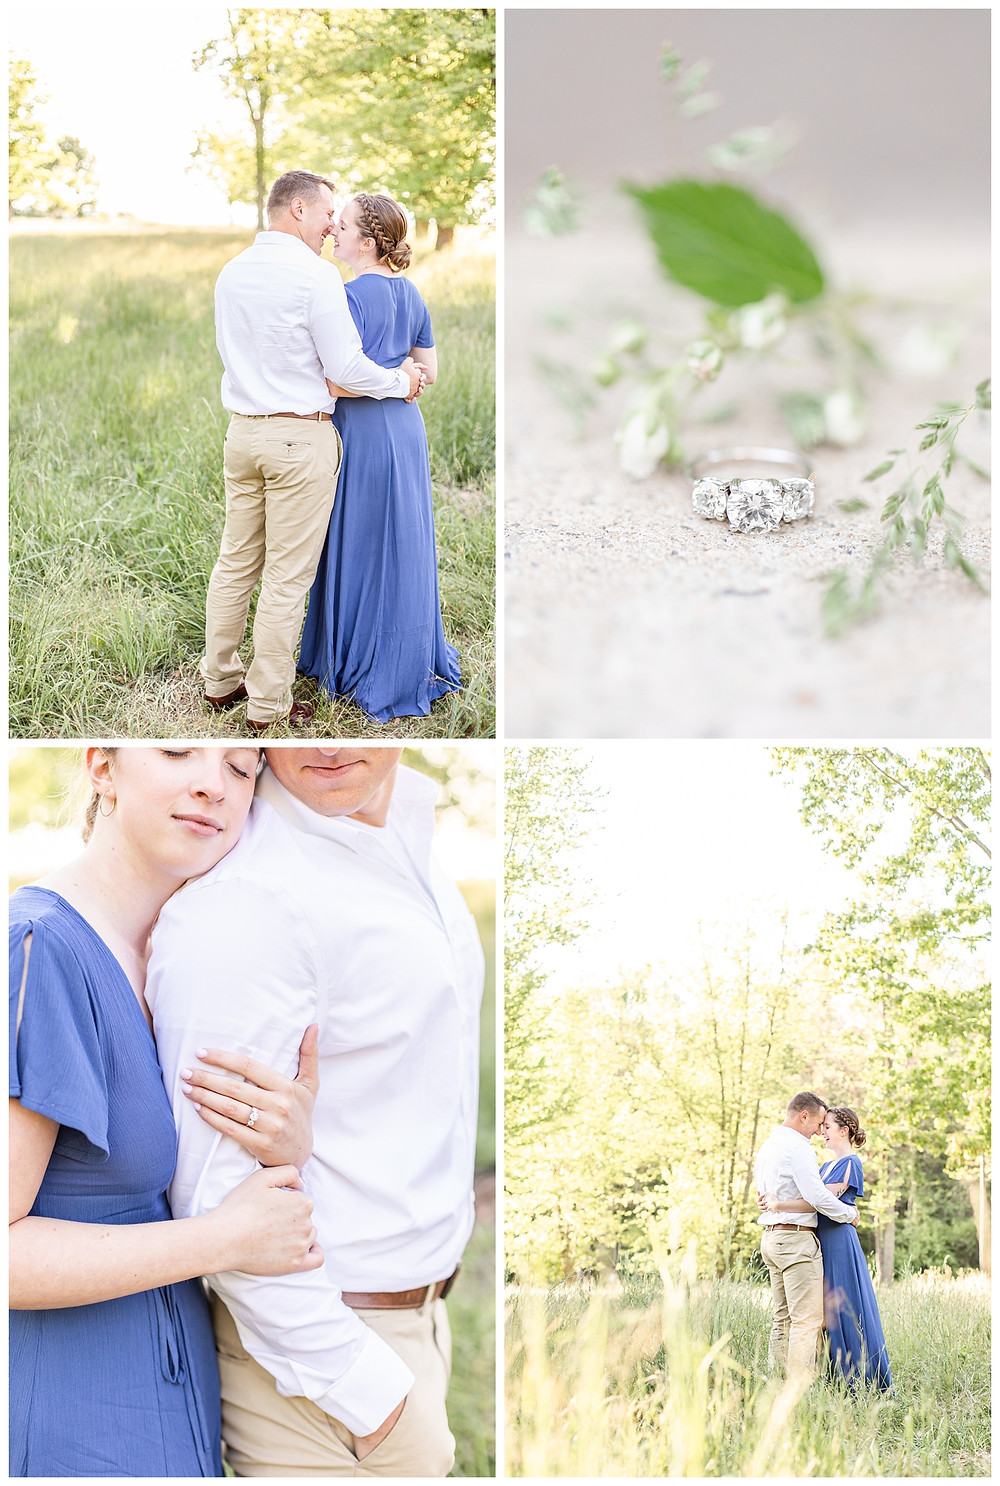 Josh and Andrea wedding photography husband and wife photographer team michigan pictures south haven engagement pictures session fields and woods photo shoot fiance ring shot standing hugging